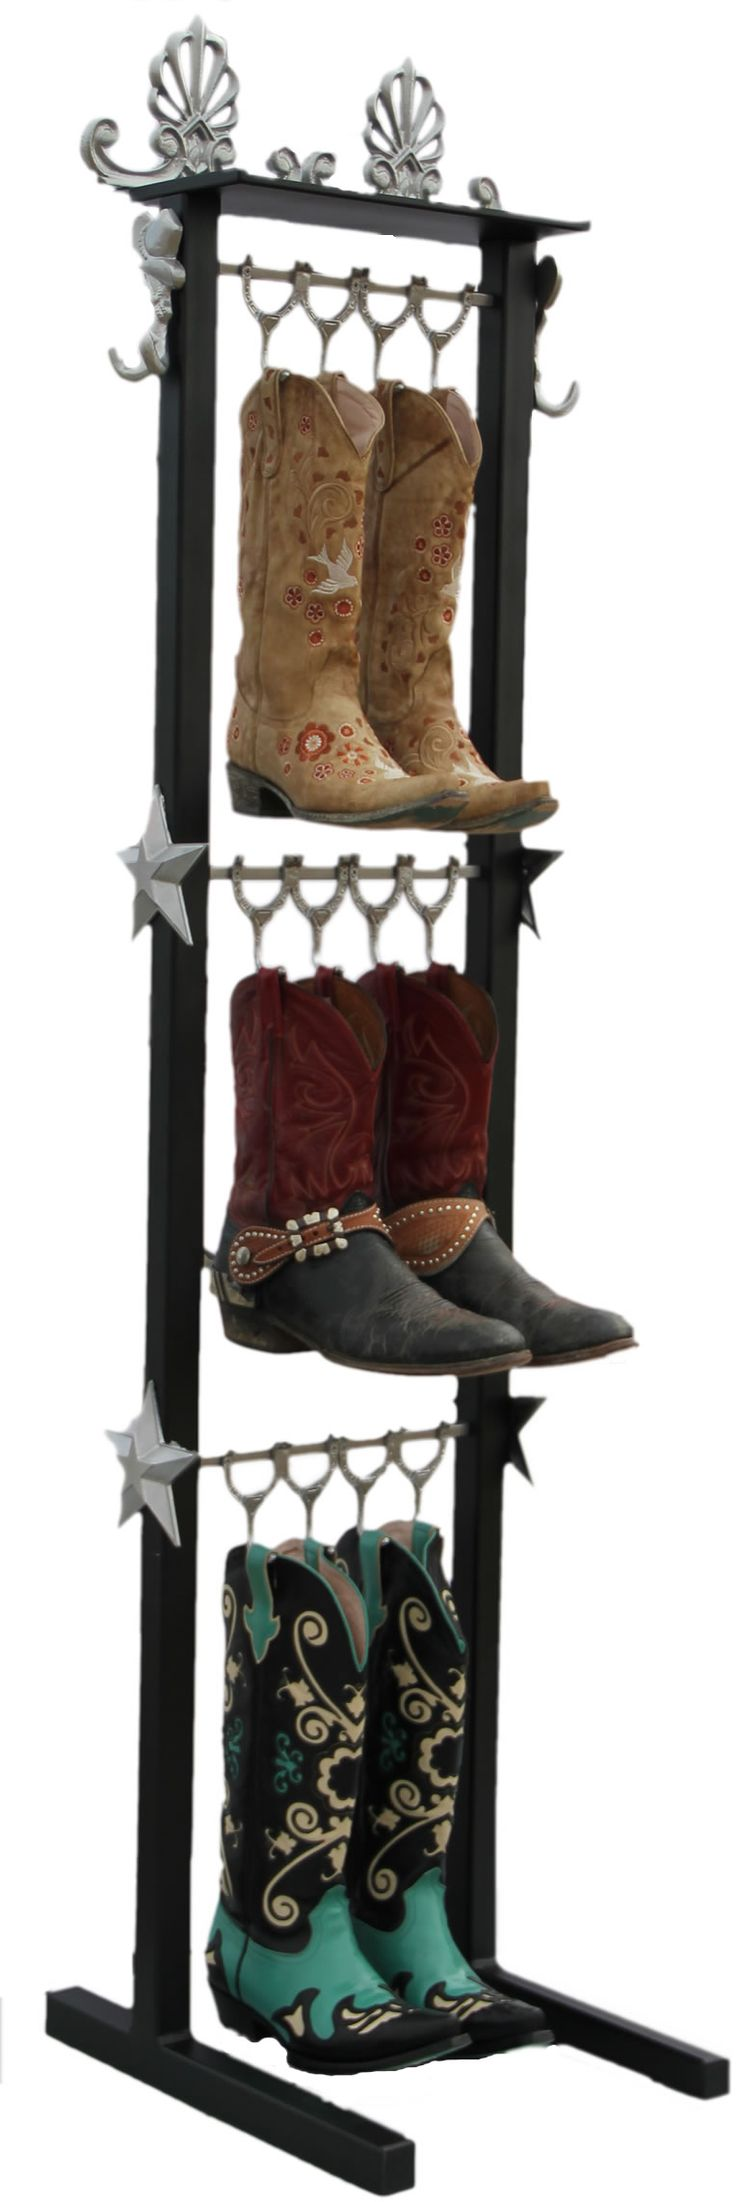 Beautifully crafted western style boot racks organize and display several pairs of boots, belts, hats and anything you can pull out of your pockets.    Made of steel and powder coated, with the look and feel of fine furniture, they are durable and versatile.    For your home entrance, tack room, barn, or horse trailer this rack will hold a multitude of items, not just boots.  www.BuildAbootRack.com